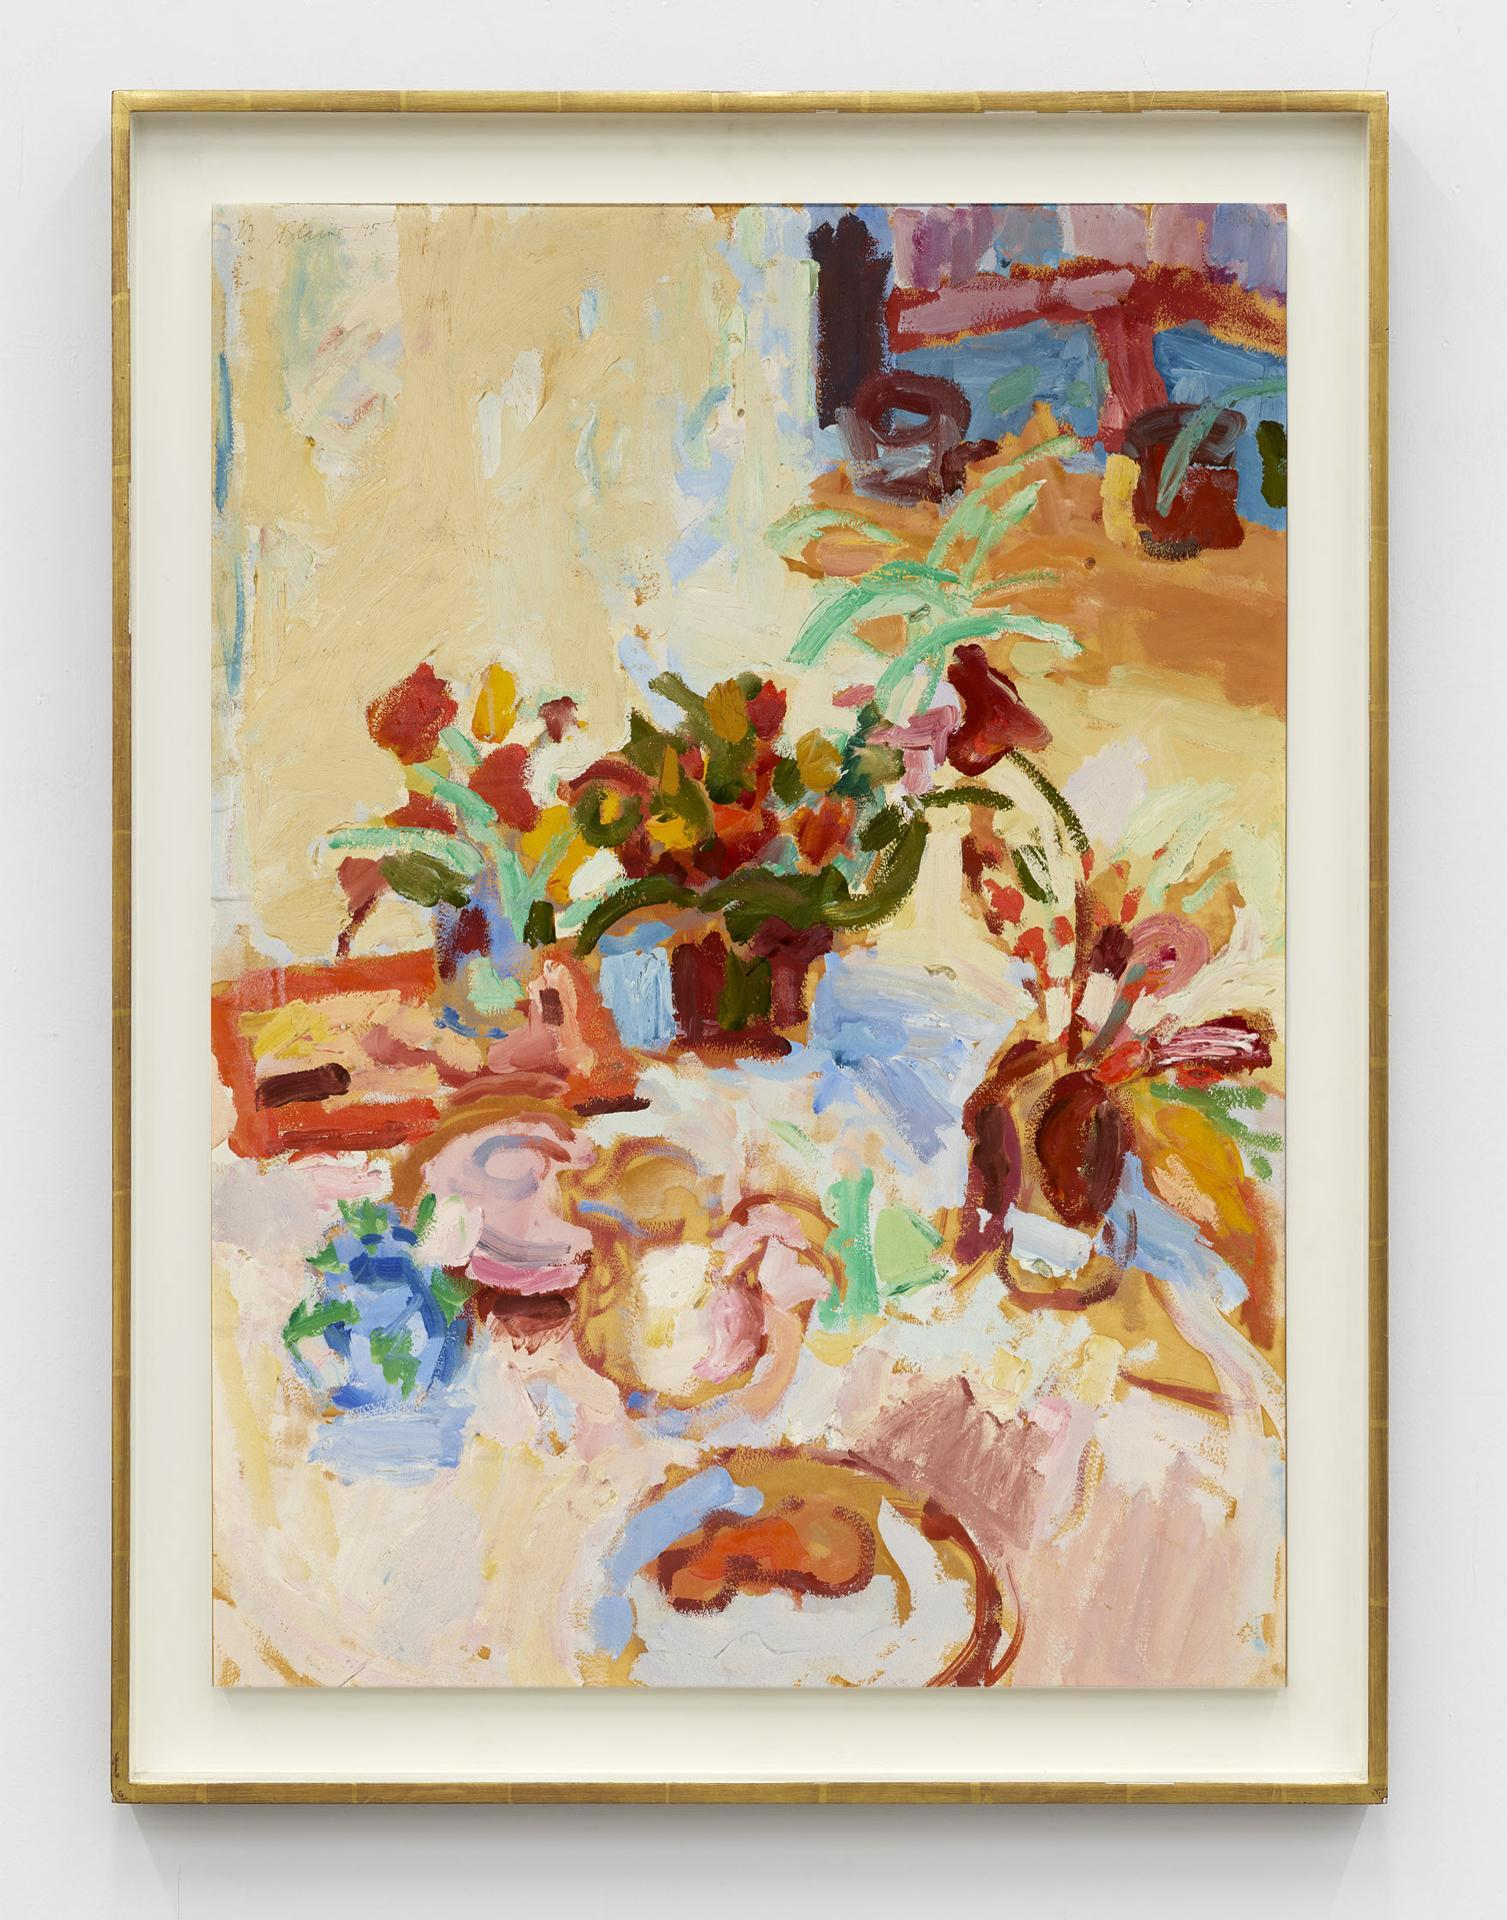 Nell Blaine,/Untitled/, 1957, oil on canvas laid to Masonite, 76.2 × 55.88  cm